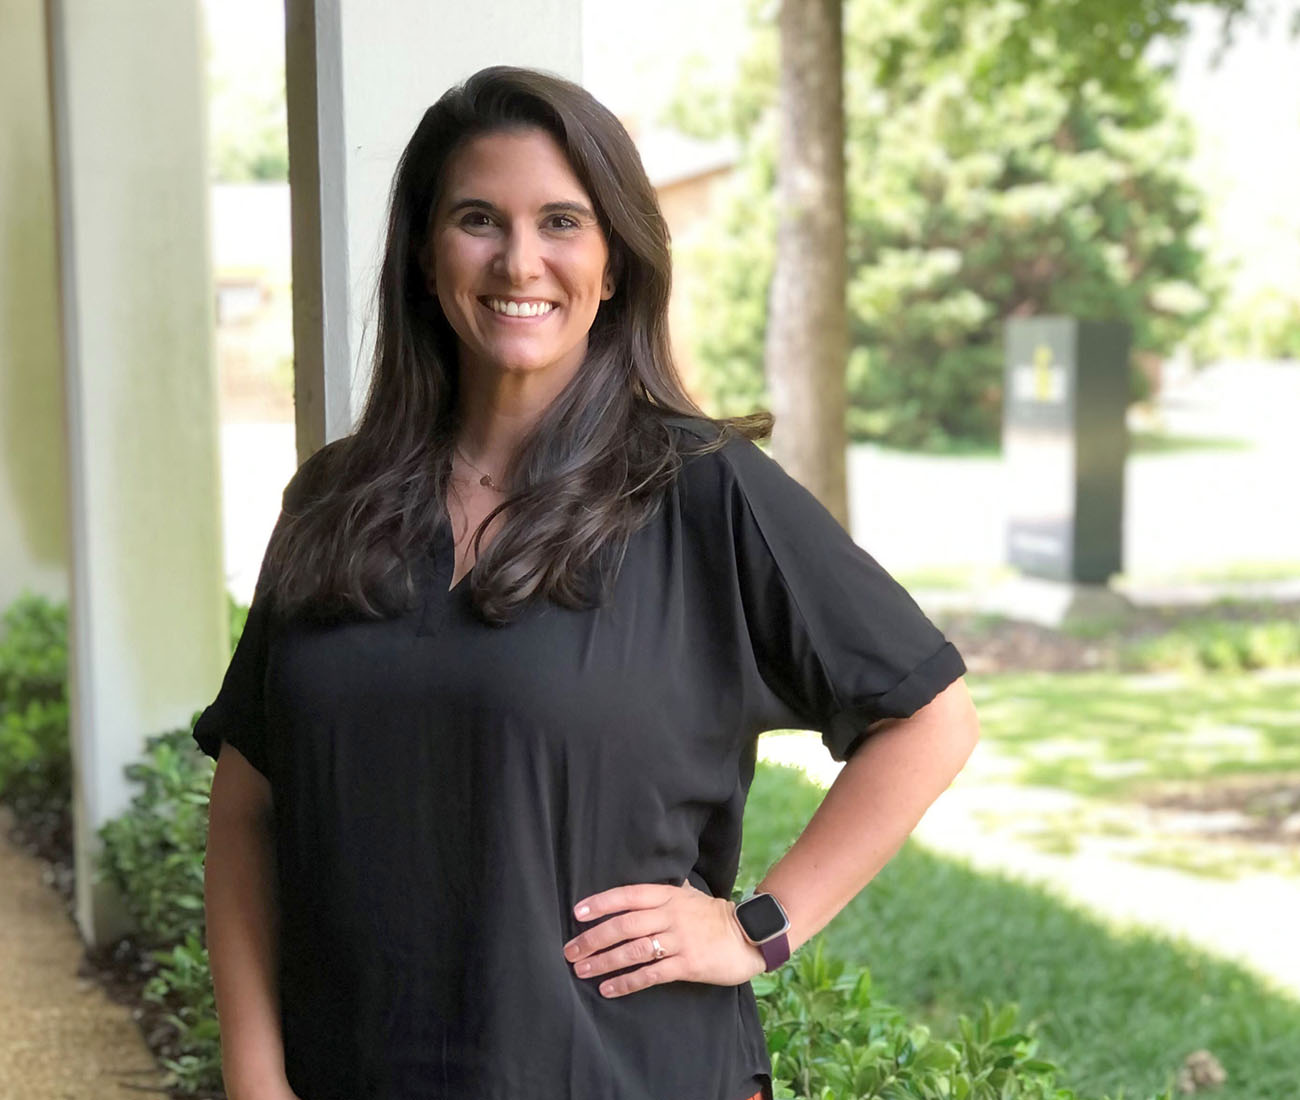 SS&A hires Ashley Moseley as Marketing & Proposal Coordinator